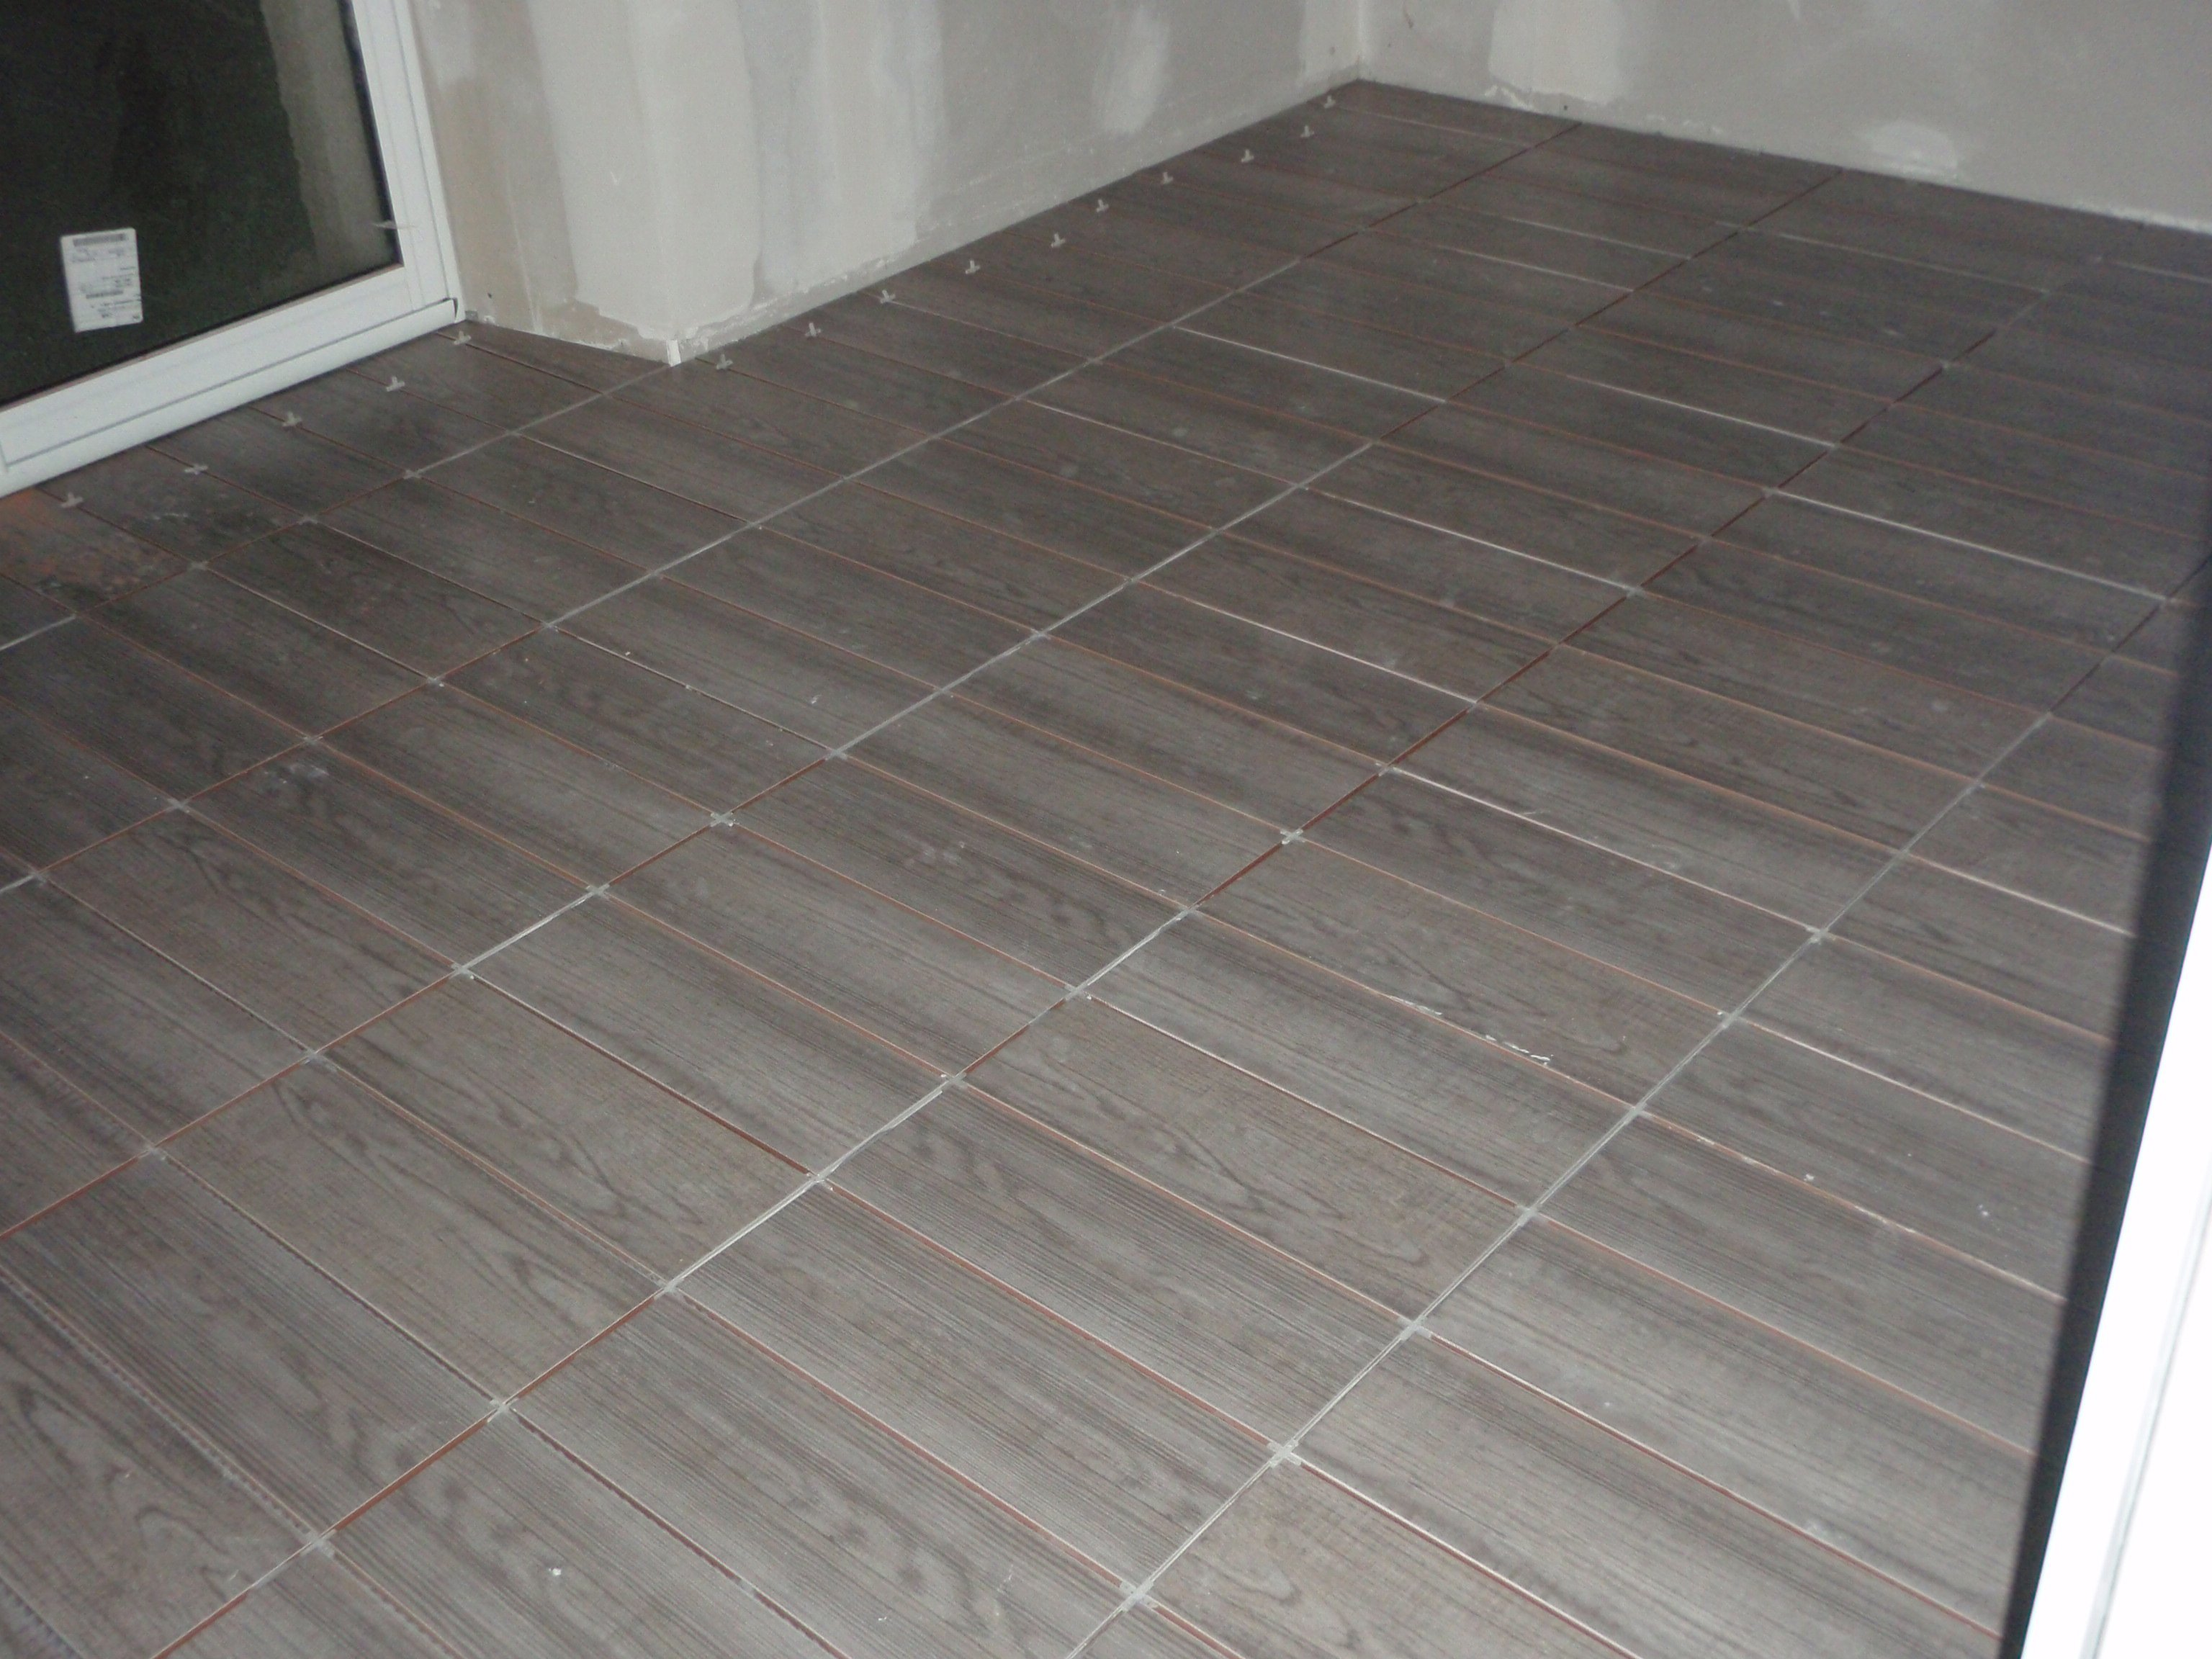 Une long re un projet une r novation carrelage c for Parquet renovation